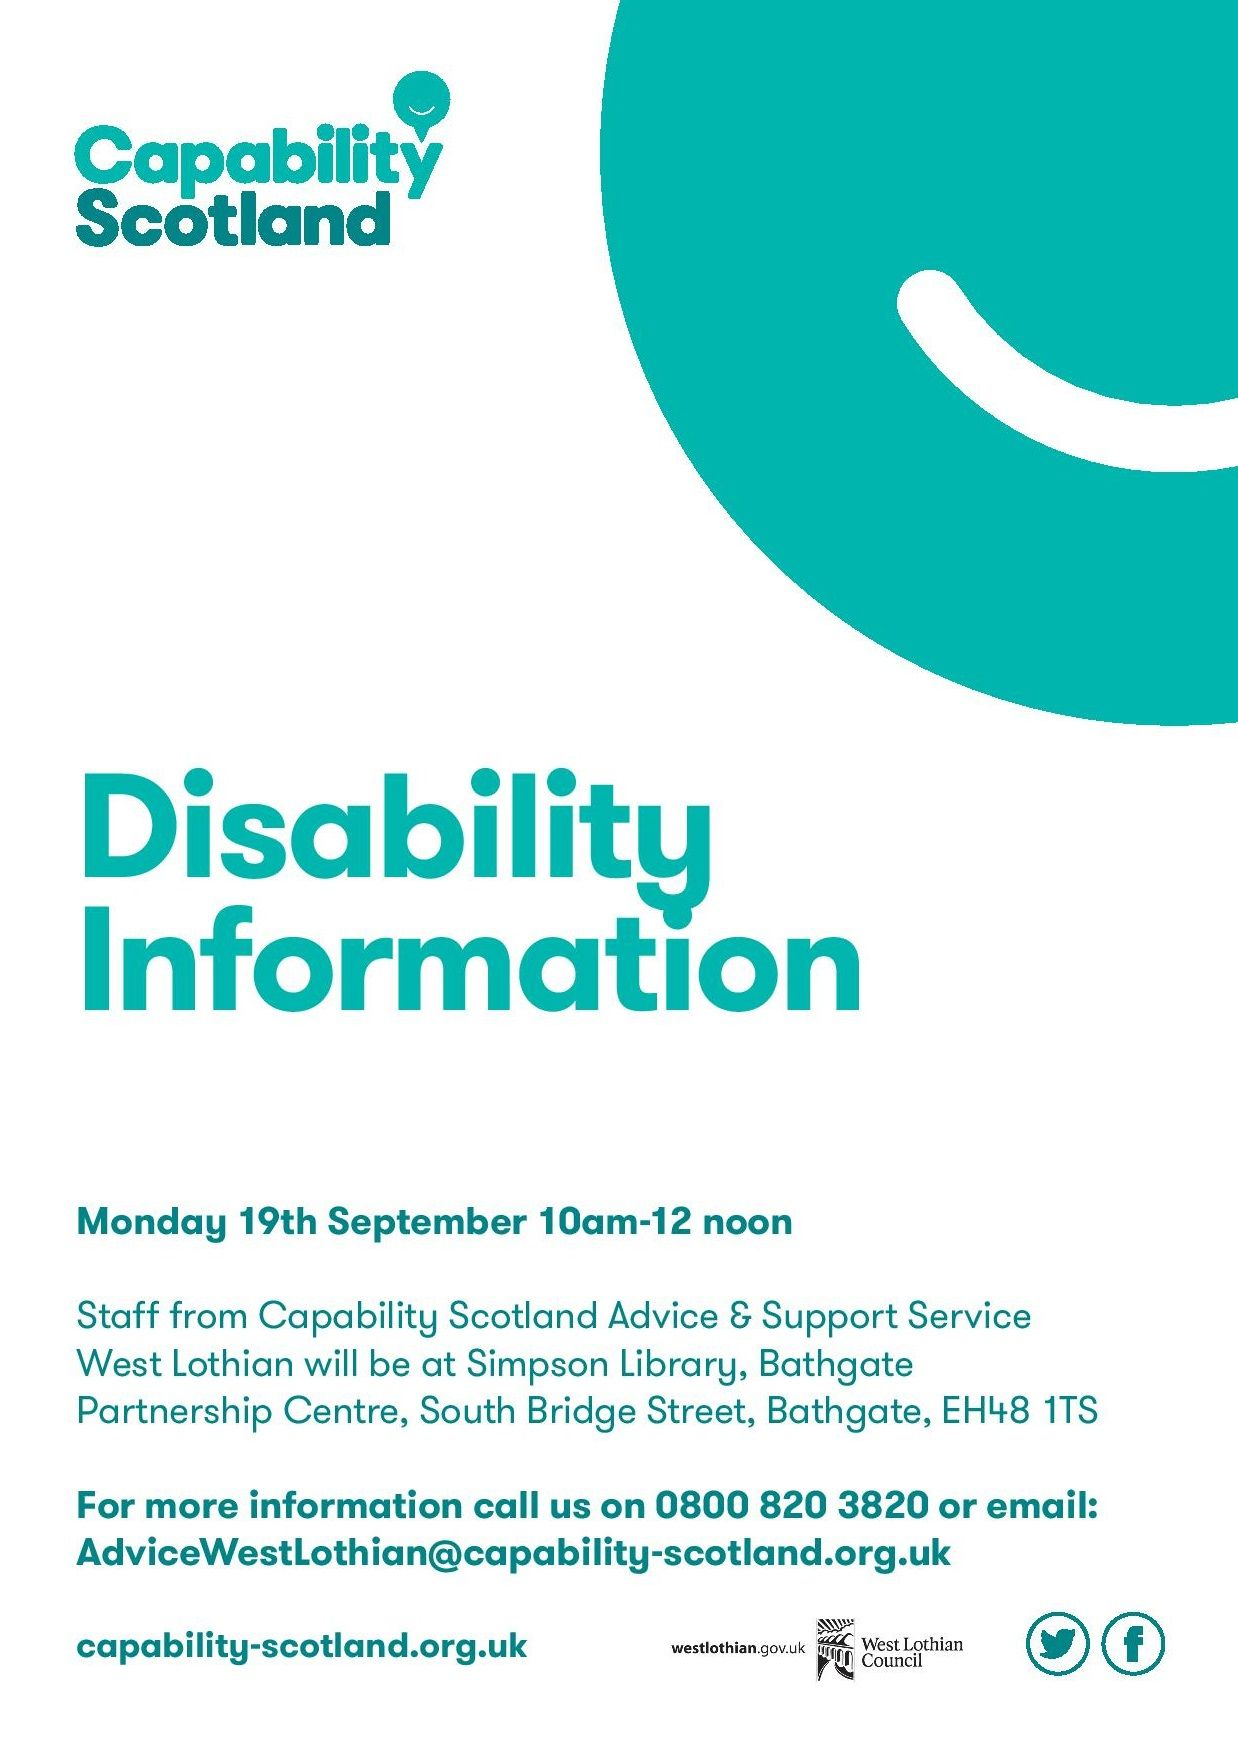 Disability information session in simpson library staff